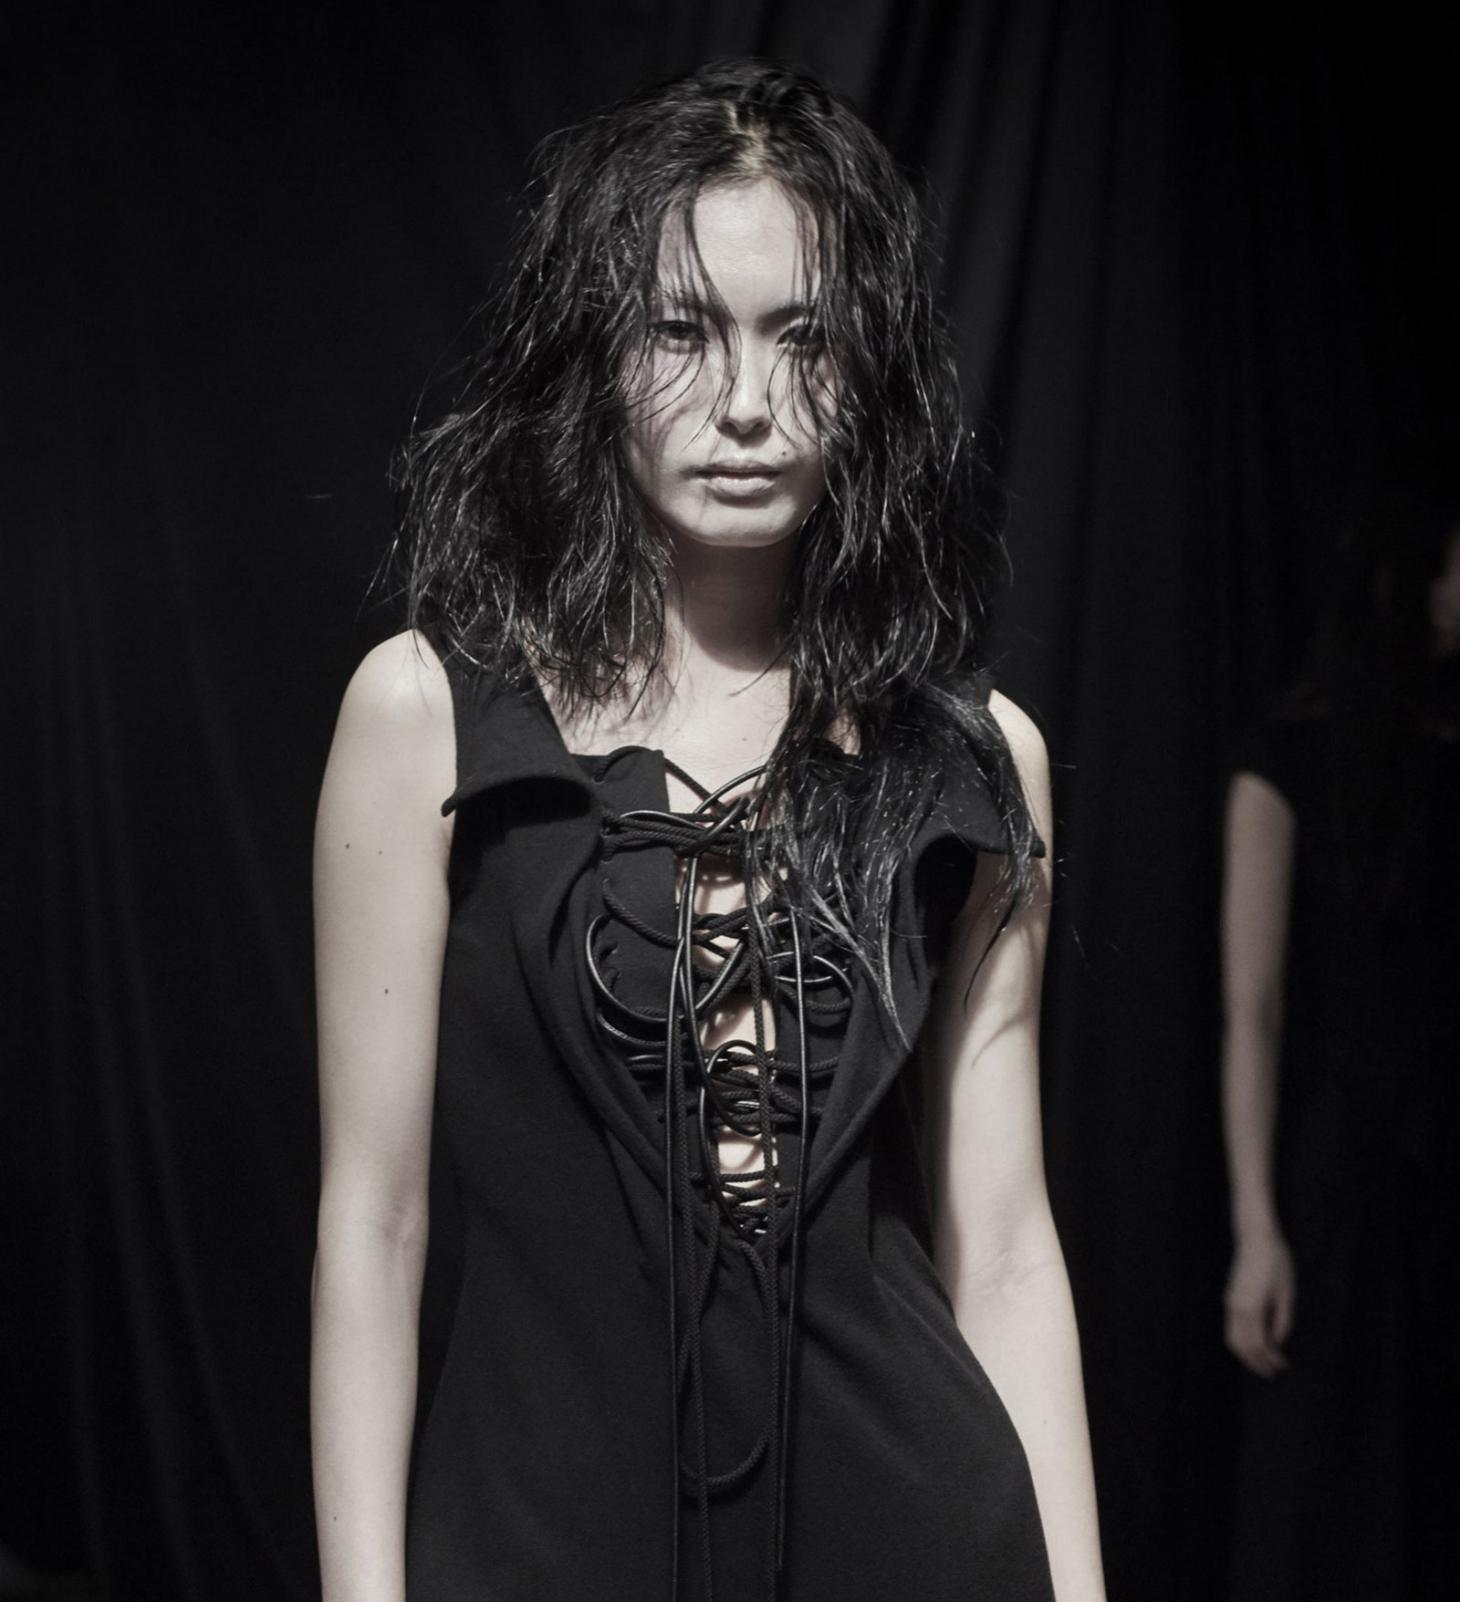 yohji yamamoto A/W 21 ready to wear makeup with models wearing black hair and pale skin